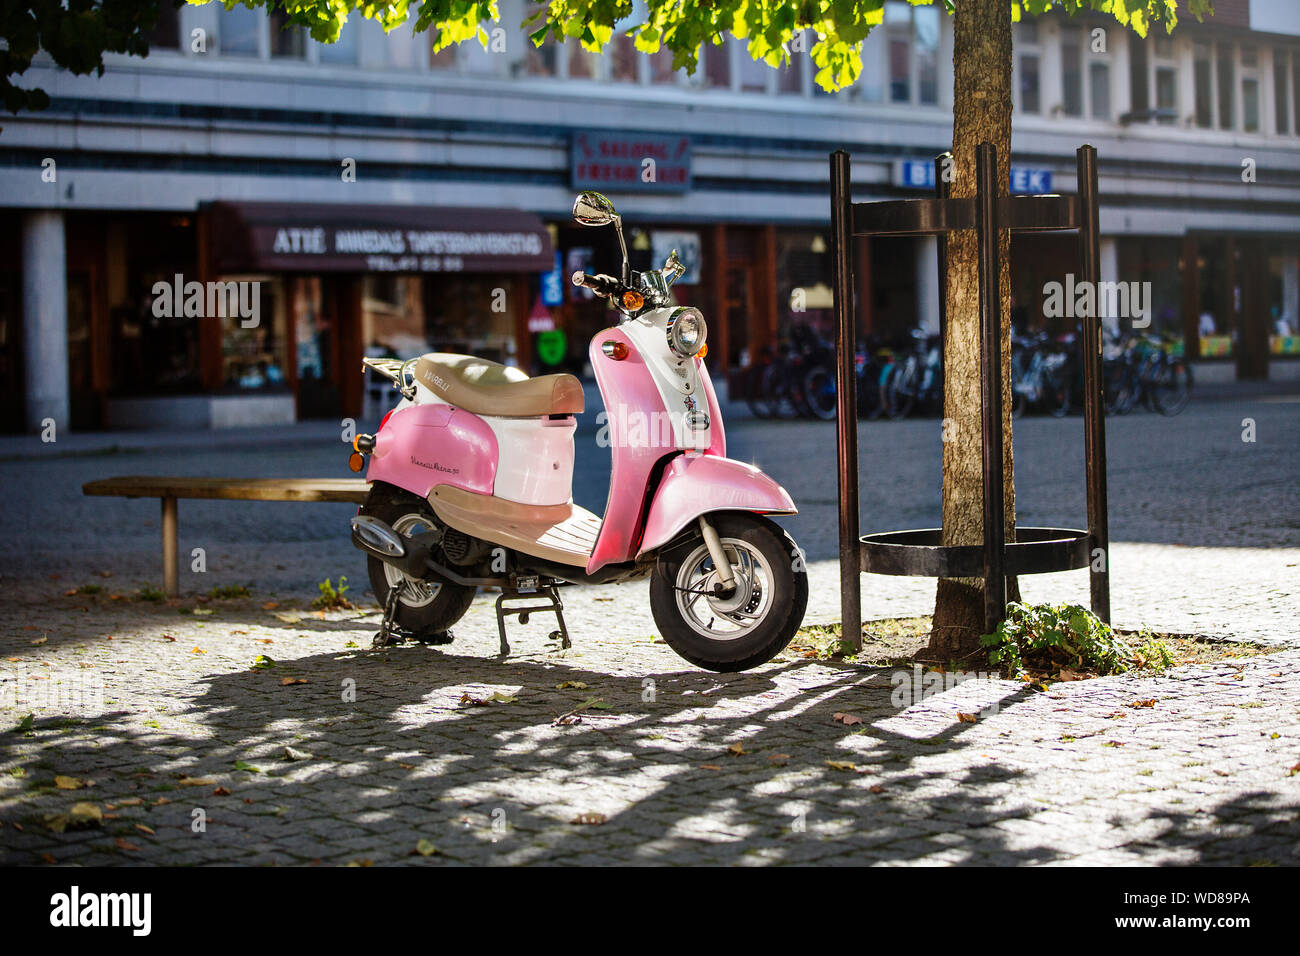 Pink scooter in public square Stock Photo